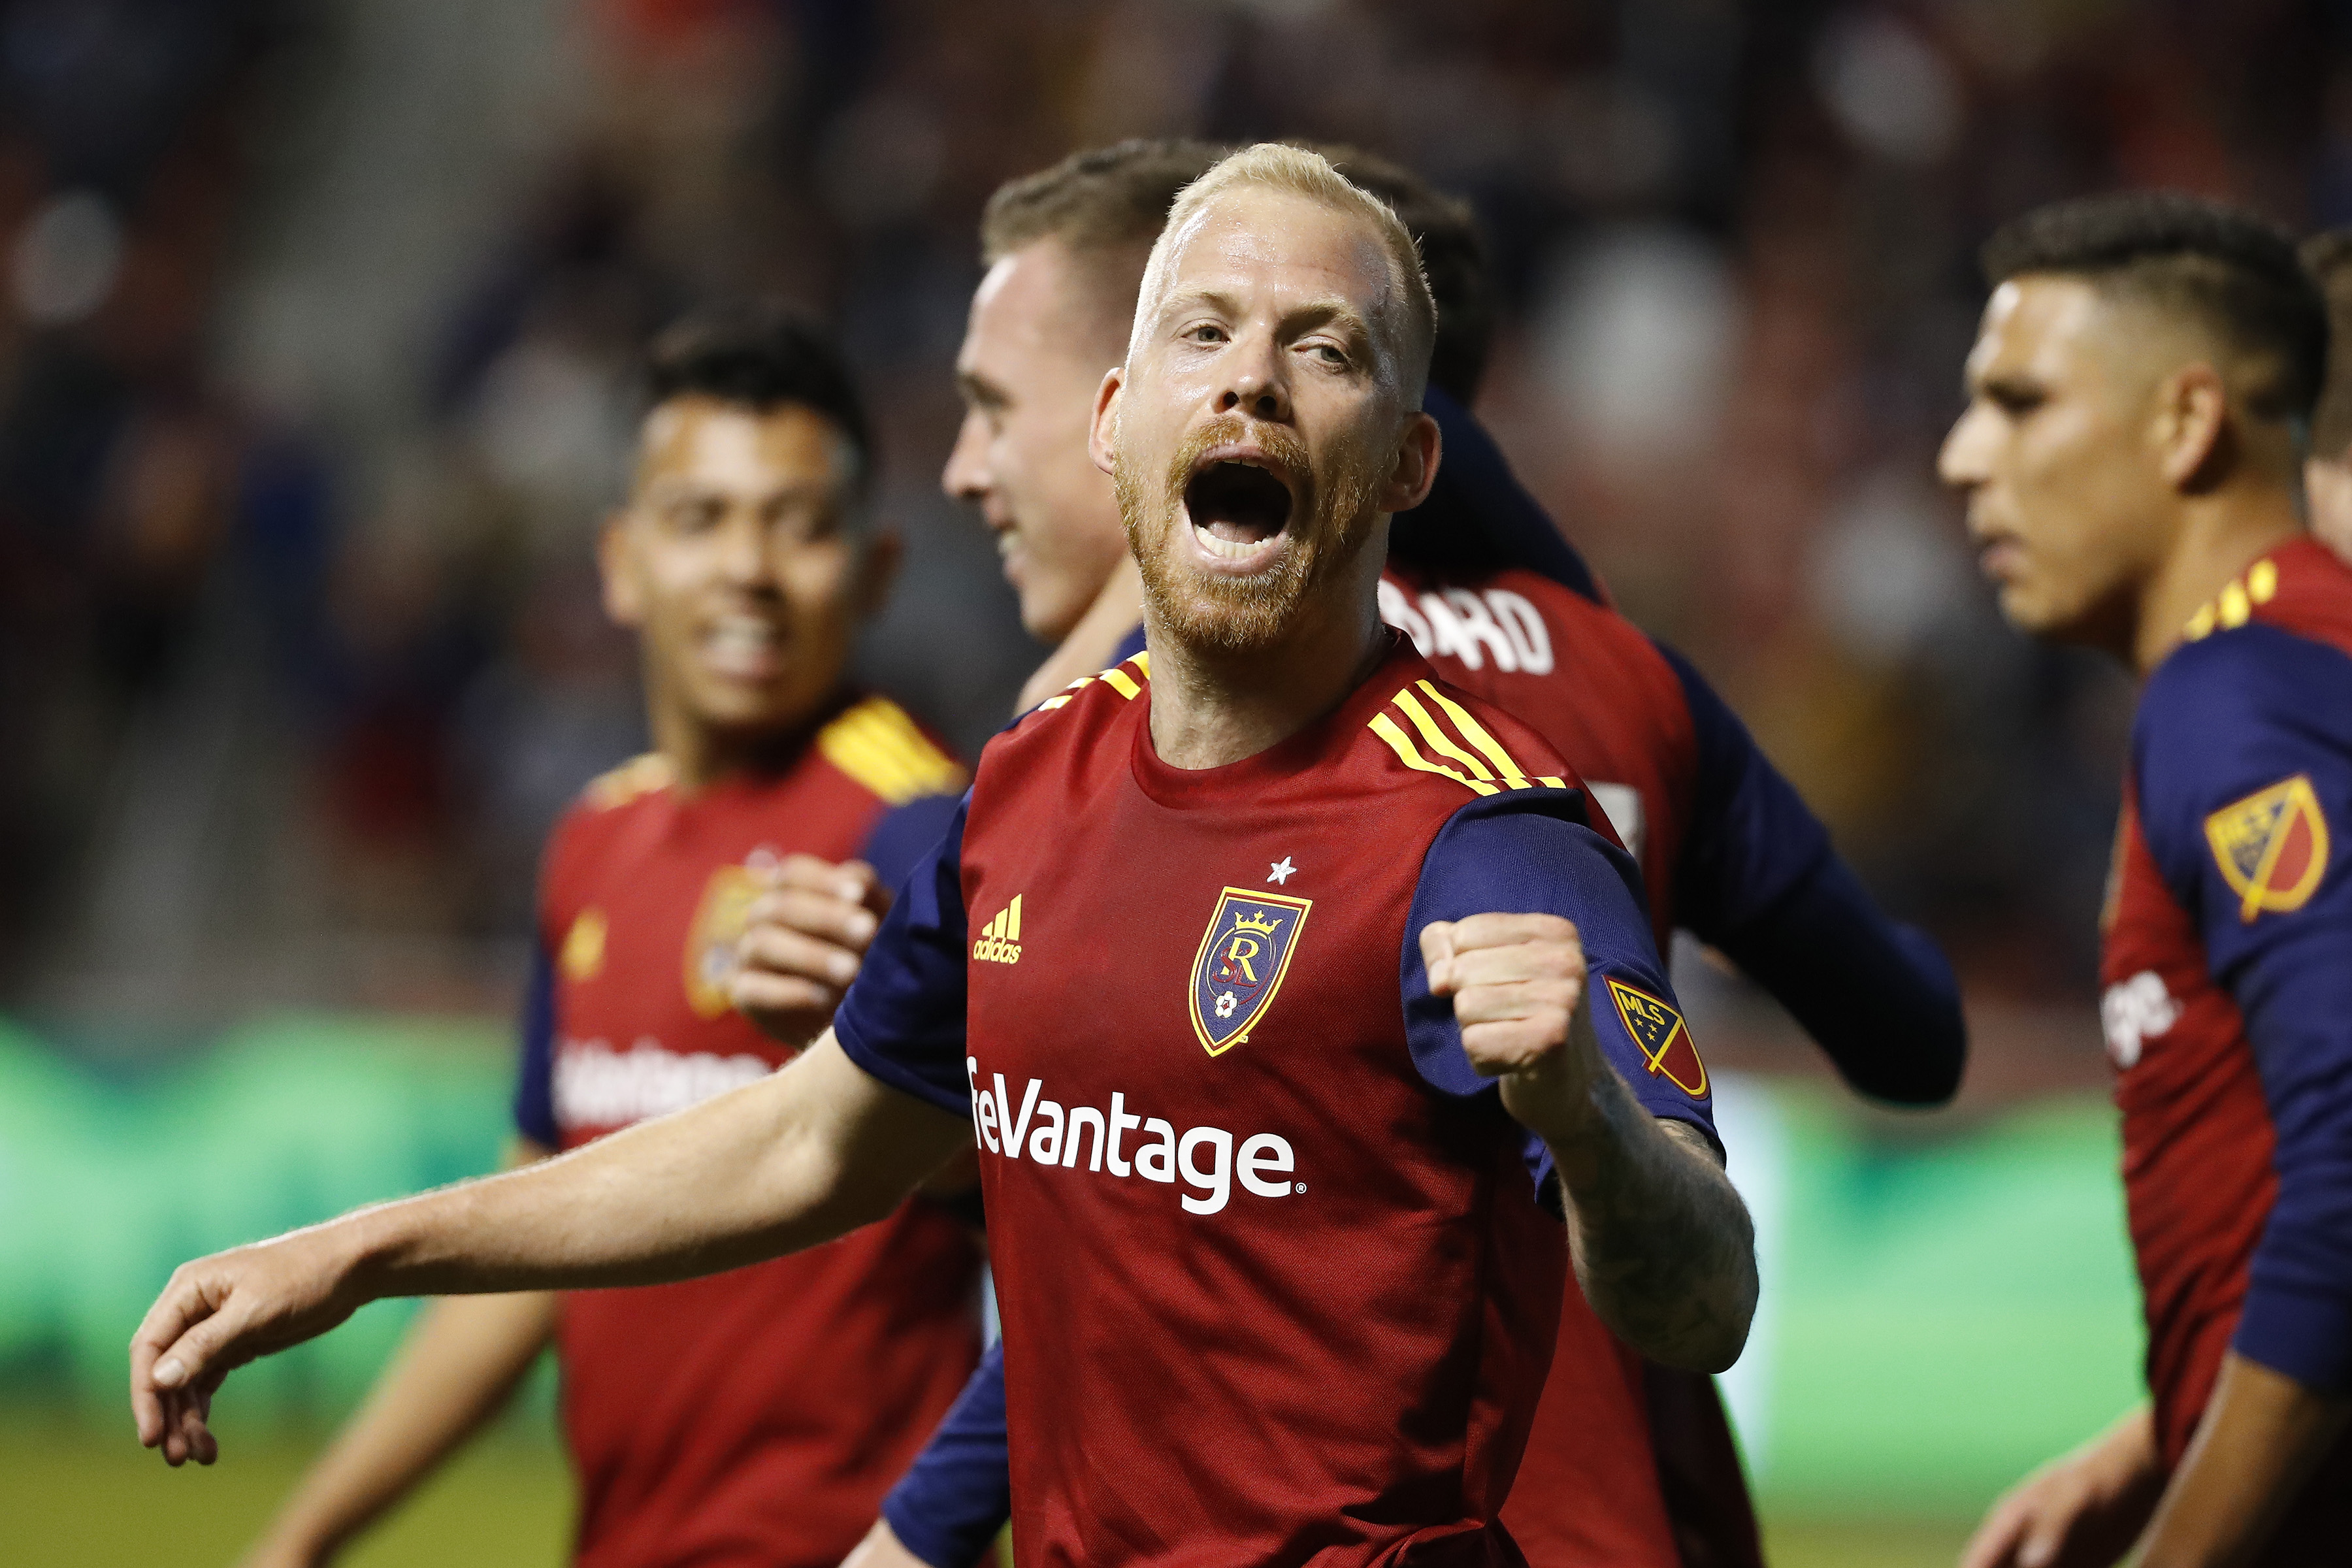 RSL Soapbox Archives - Real Salt Lake news and rumors - Page 3